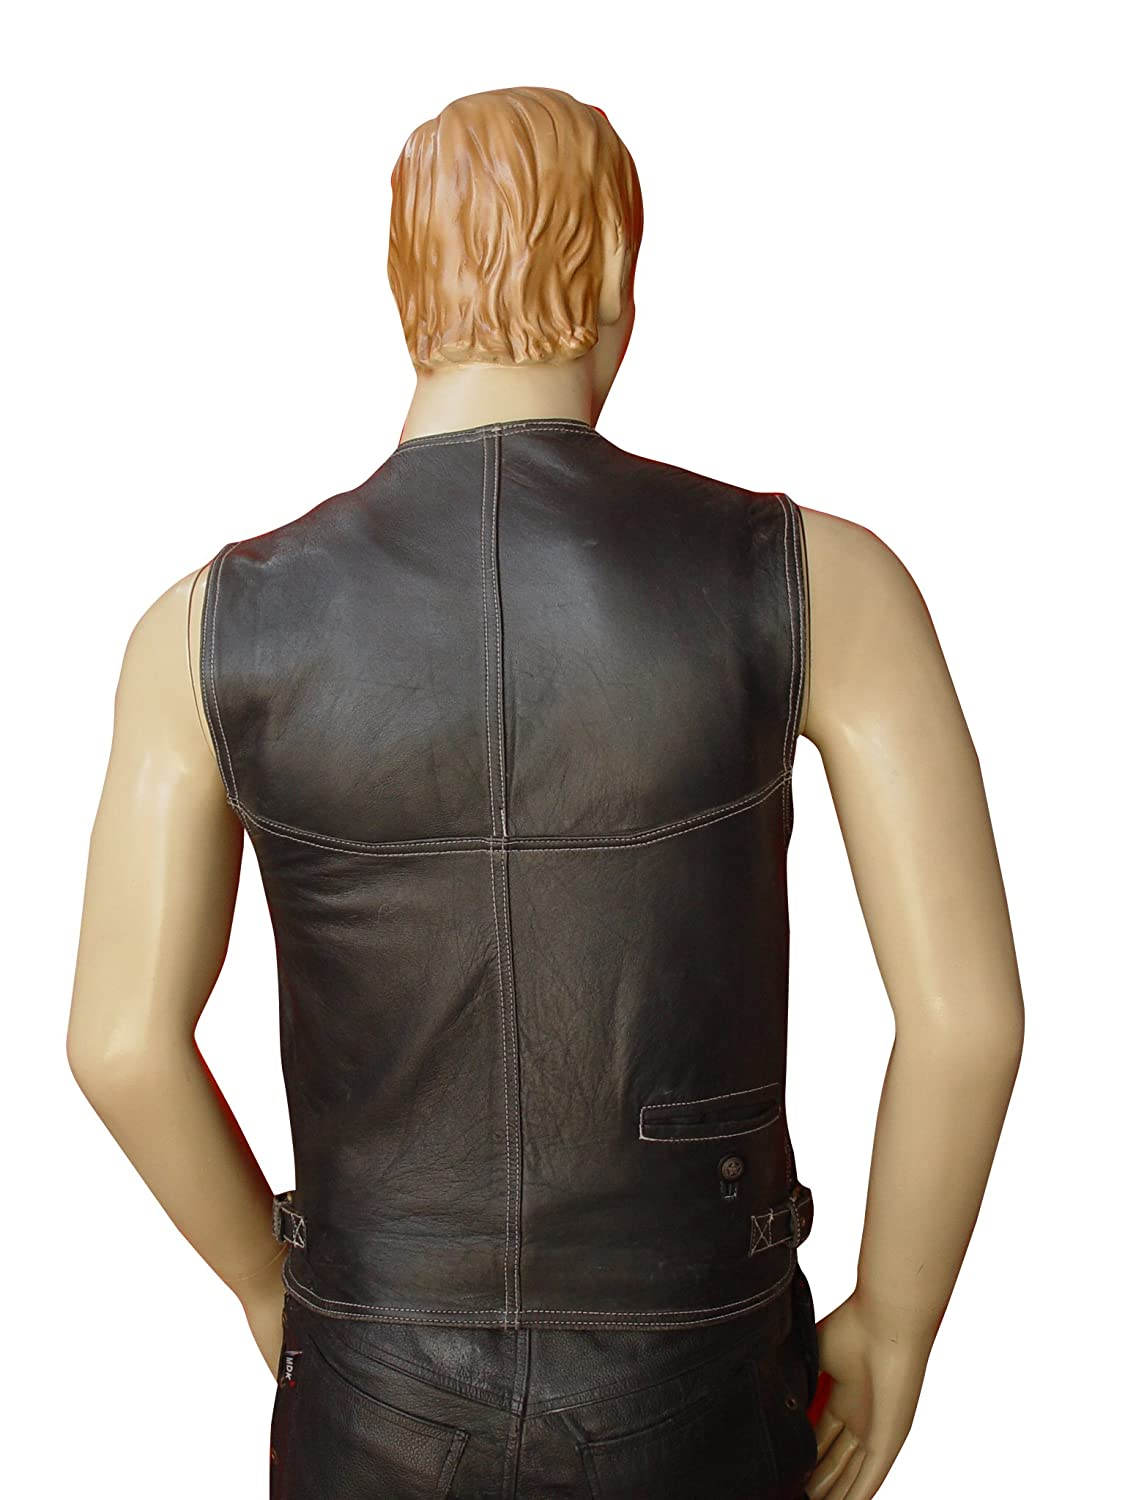 Bespoke Tailored Leather Hunting Vest With White Stitching